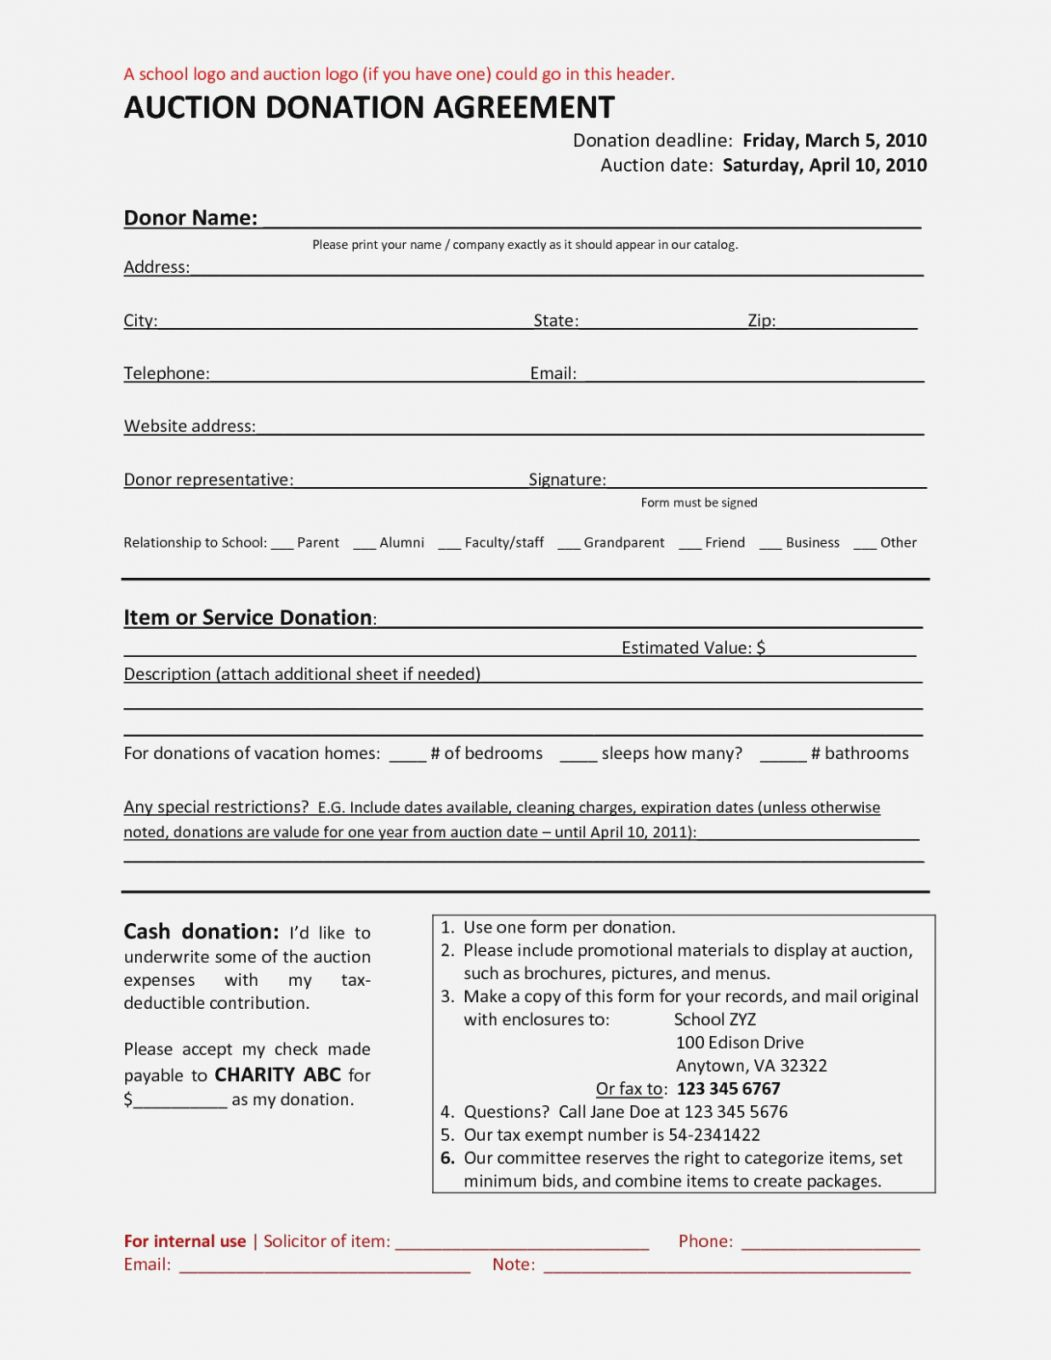 Explore Our Example Of Charitable Donation Agreement Template For Free Charitable Donations Auction Donations Agreement